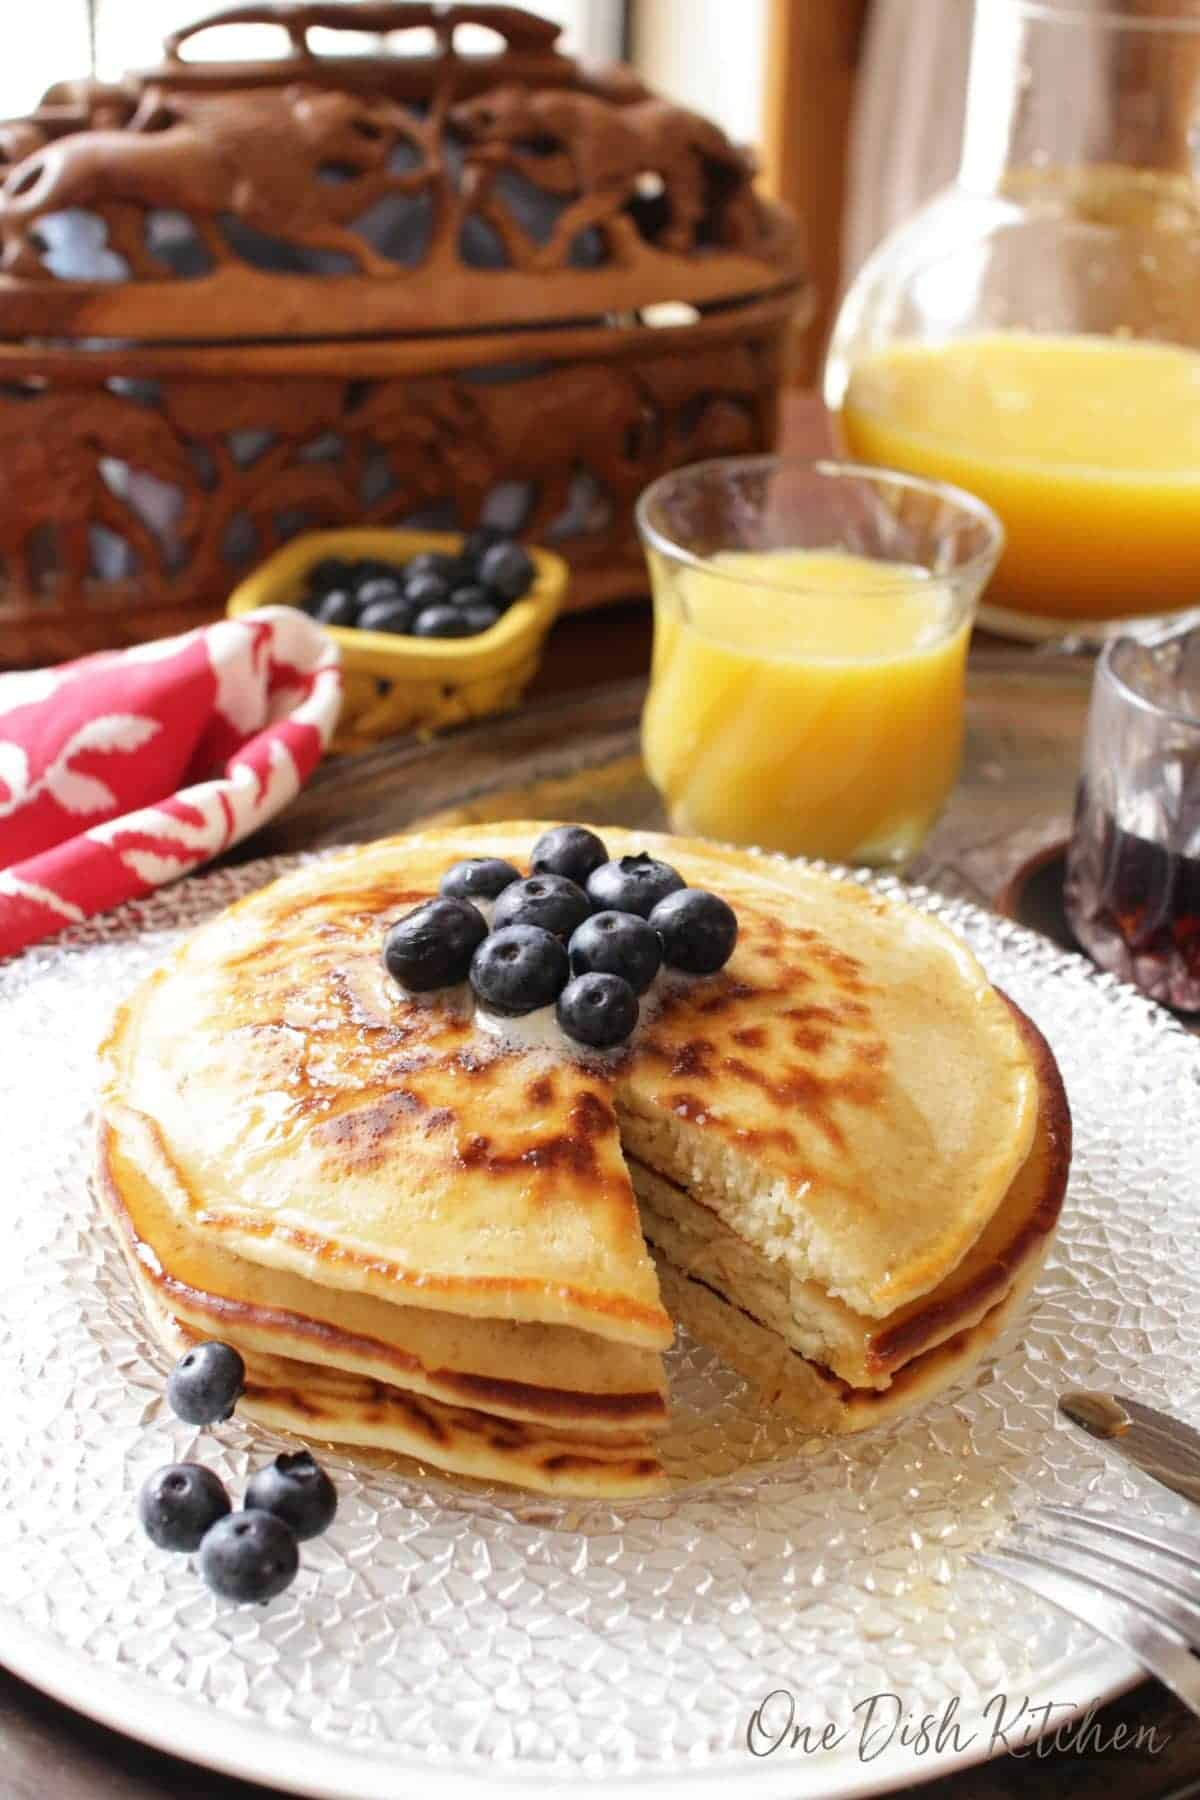 A piece cut out of three pancakes stacked on a plate and topped with melted butter and blueberries next to a small bowl of blueberries, a glass of orange juice, and a small glass container of maple syrup